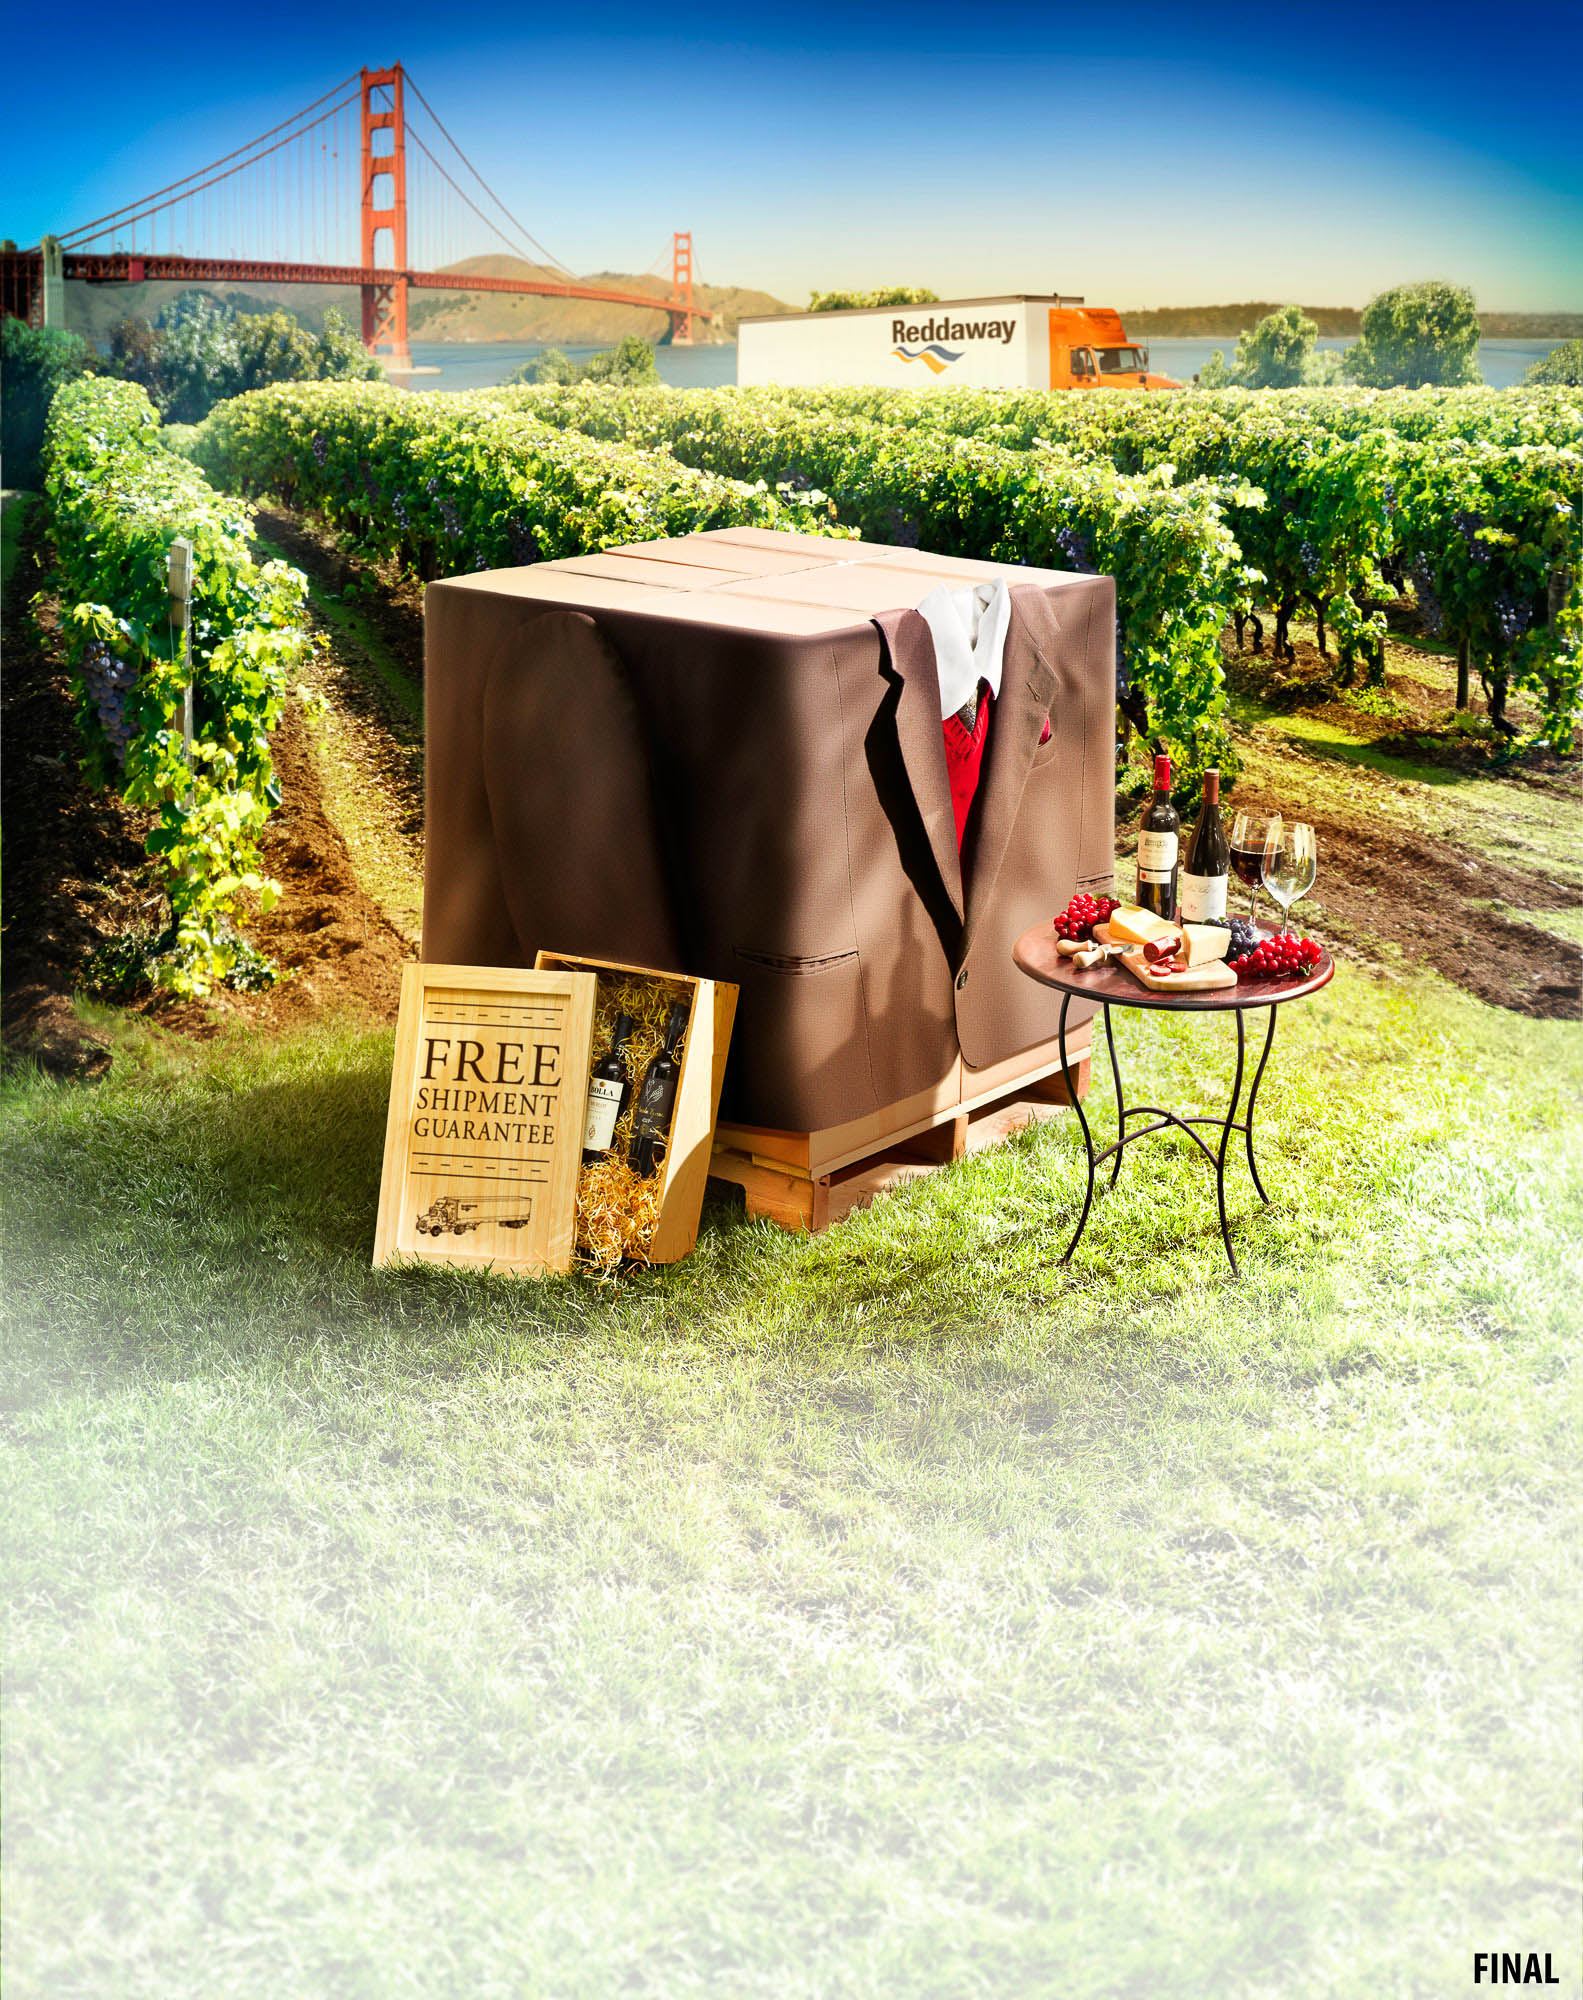 professional composite image of box with suit and picnic in vineyard